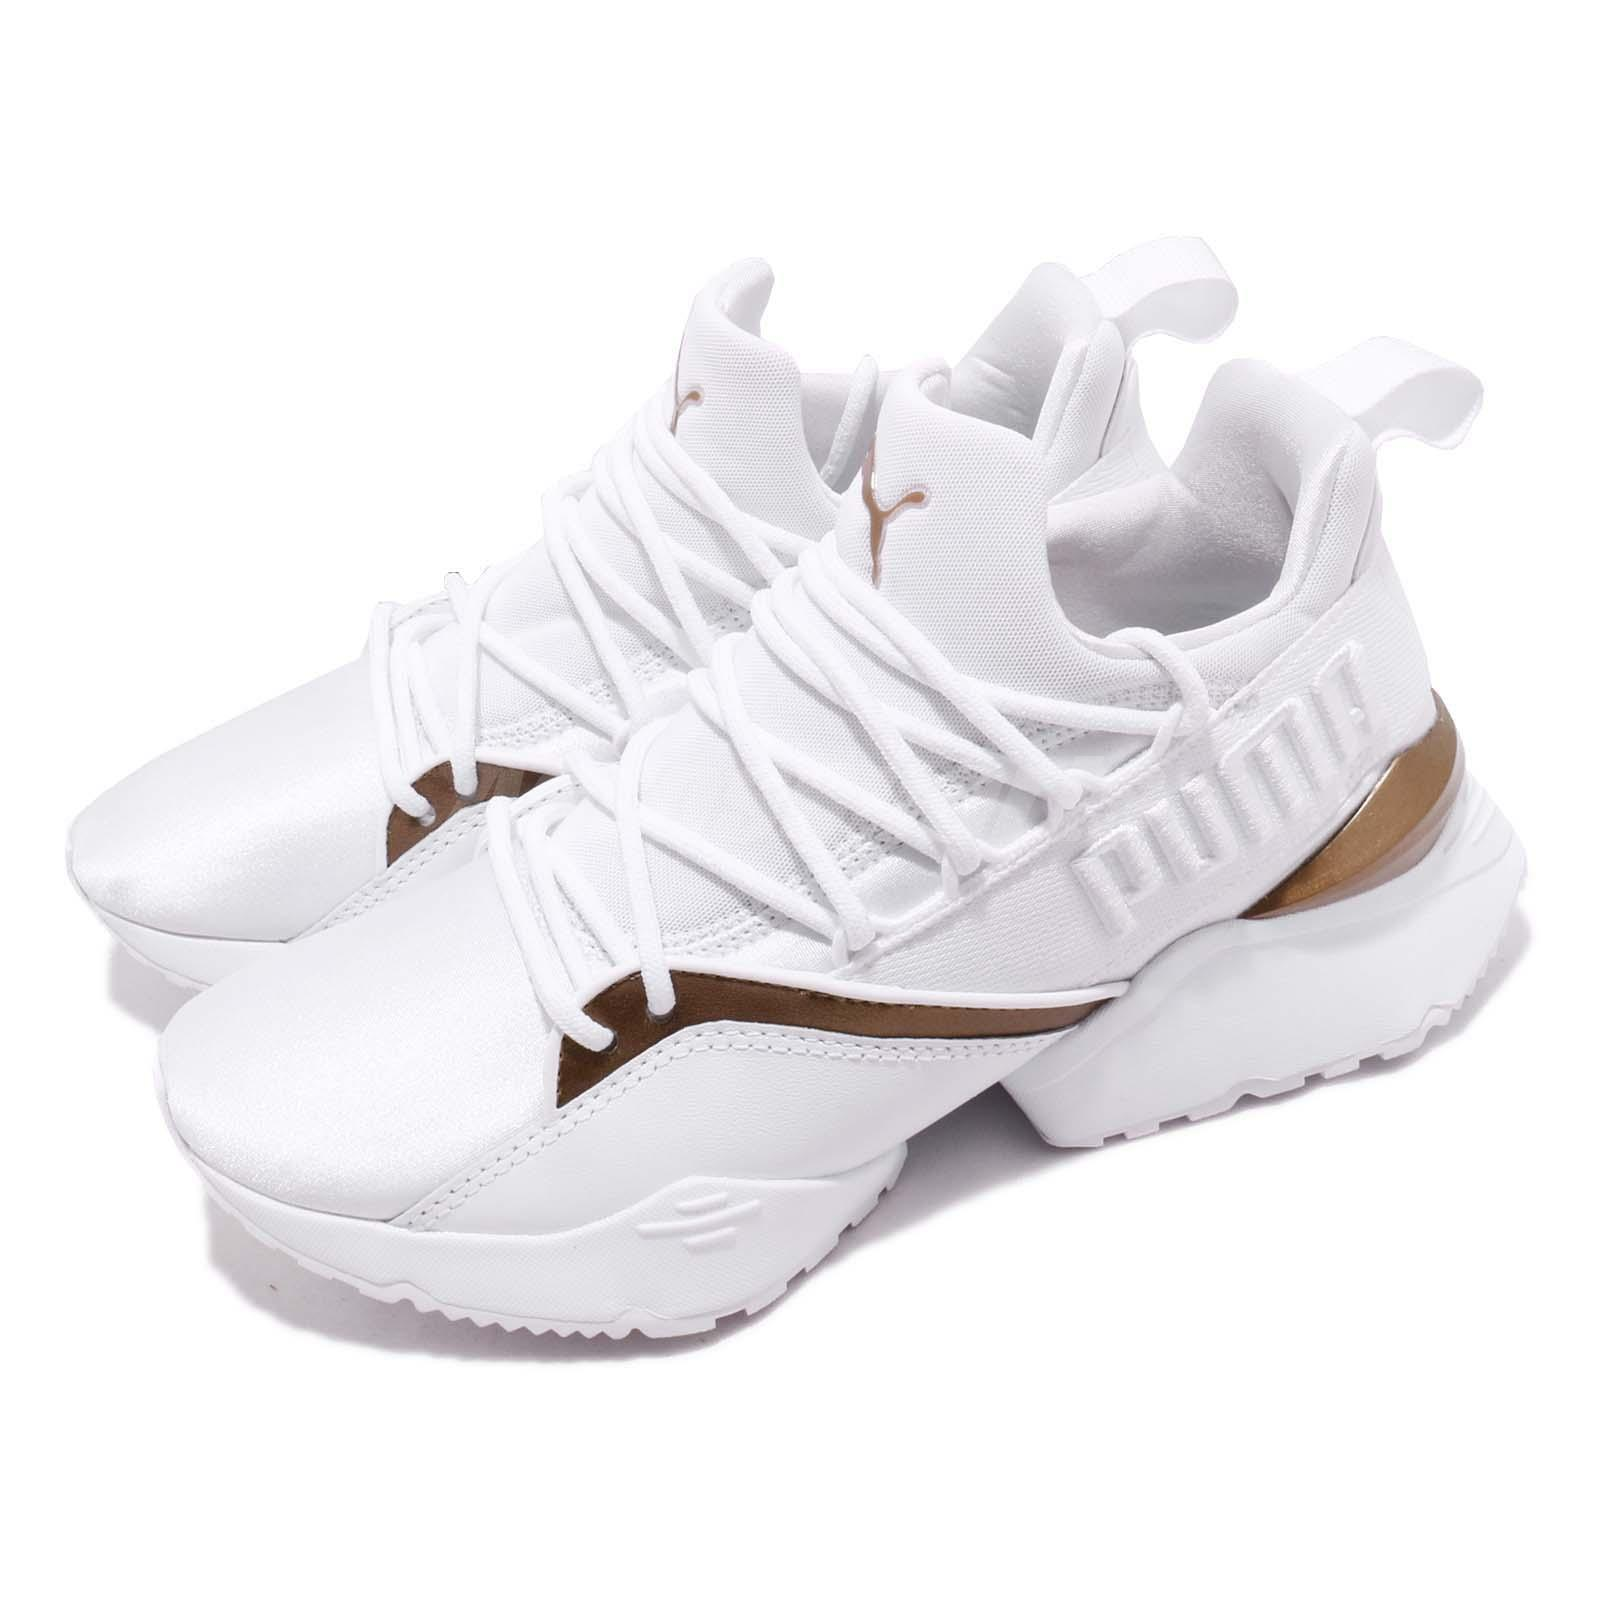 6ba5ce9764de Details about Puma Muse Maia Luxe Wns White Women Running Casual Lifestyle  Shoes 366766-02